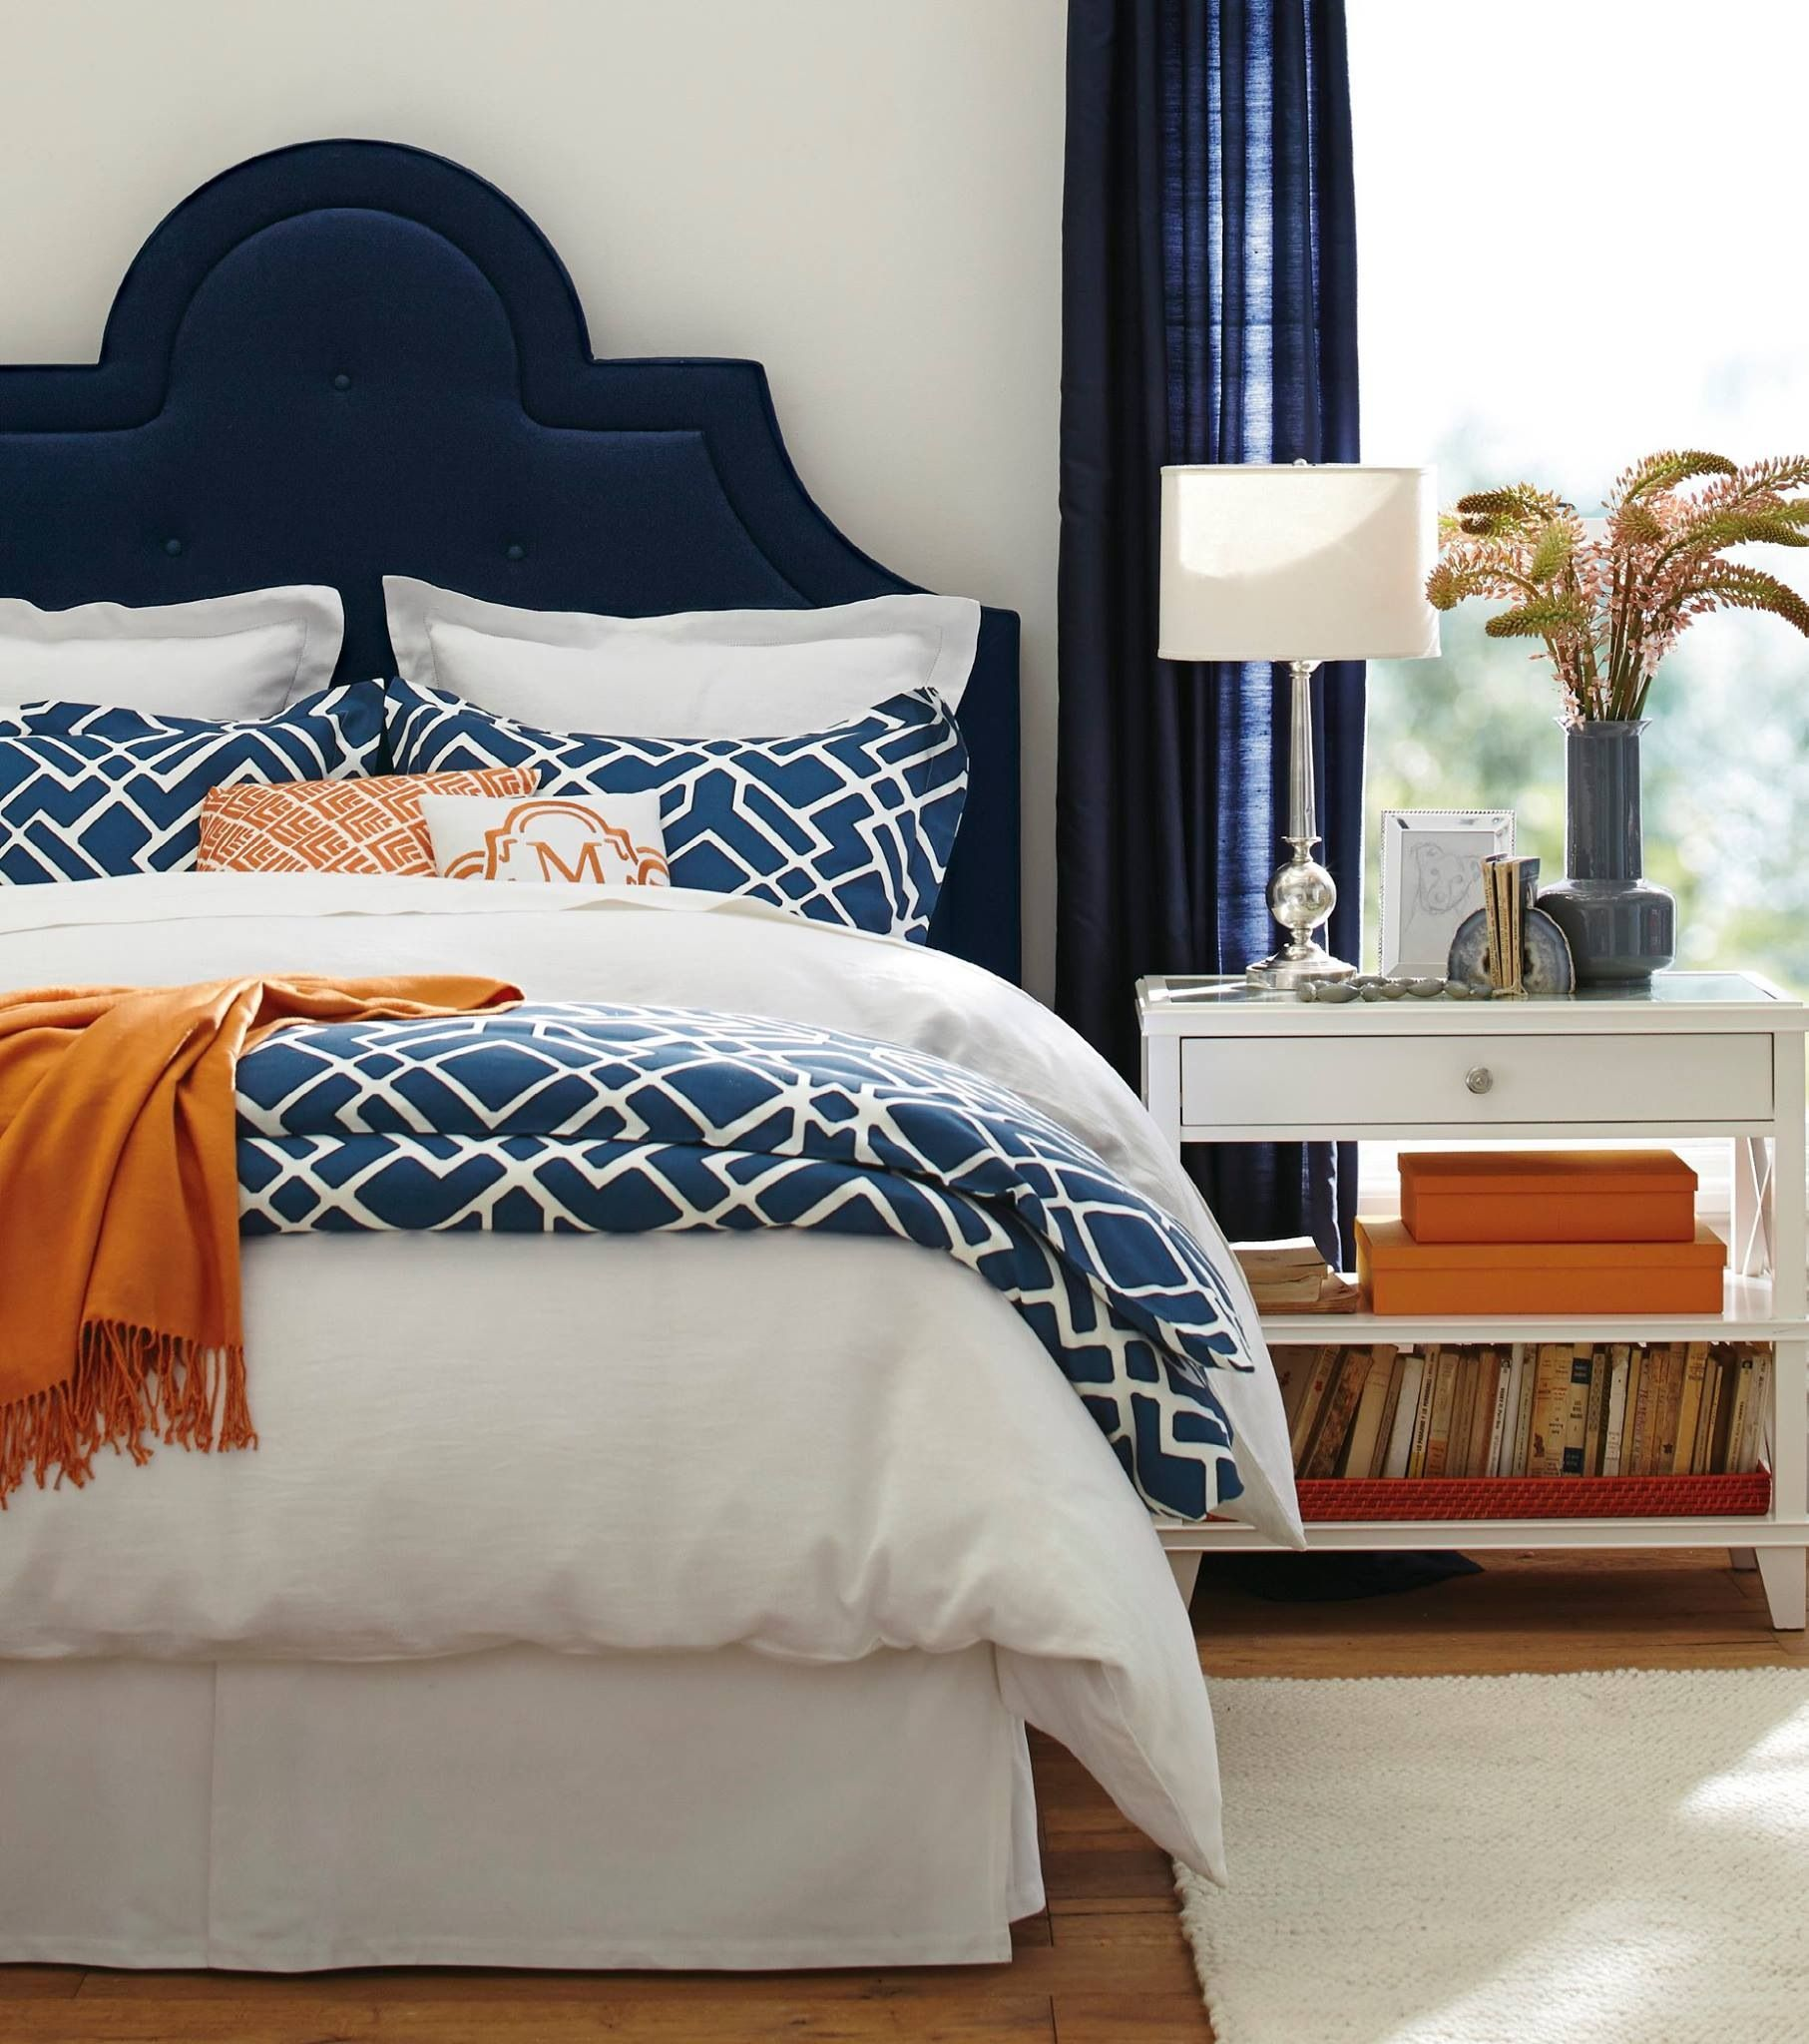 Pin by minutes past coffee on for the home pinterest bedrooms